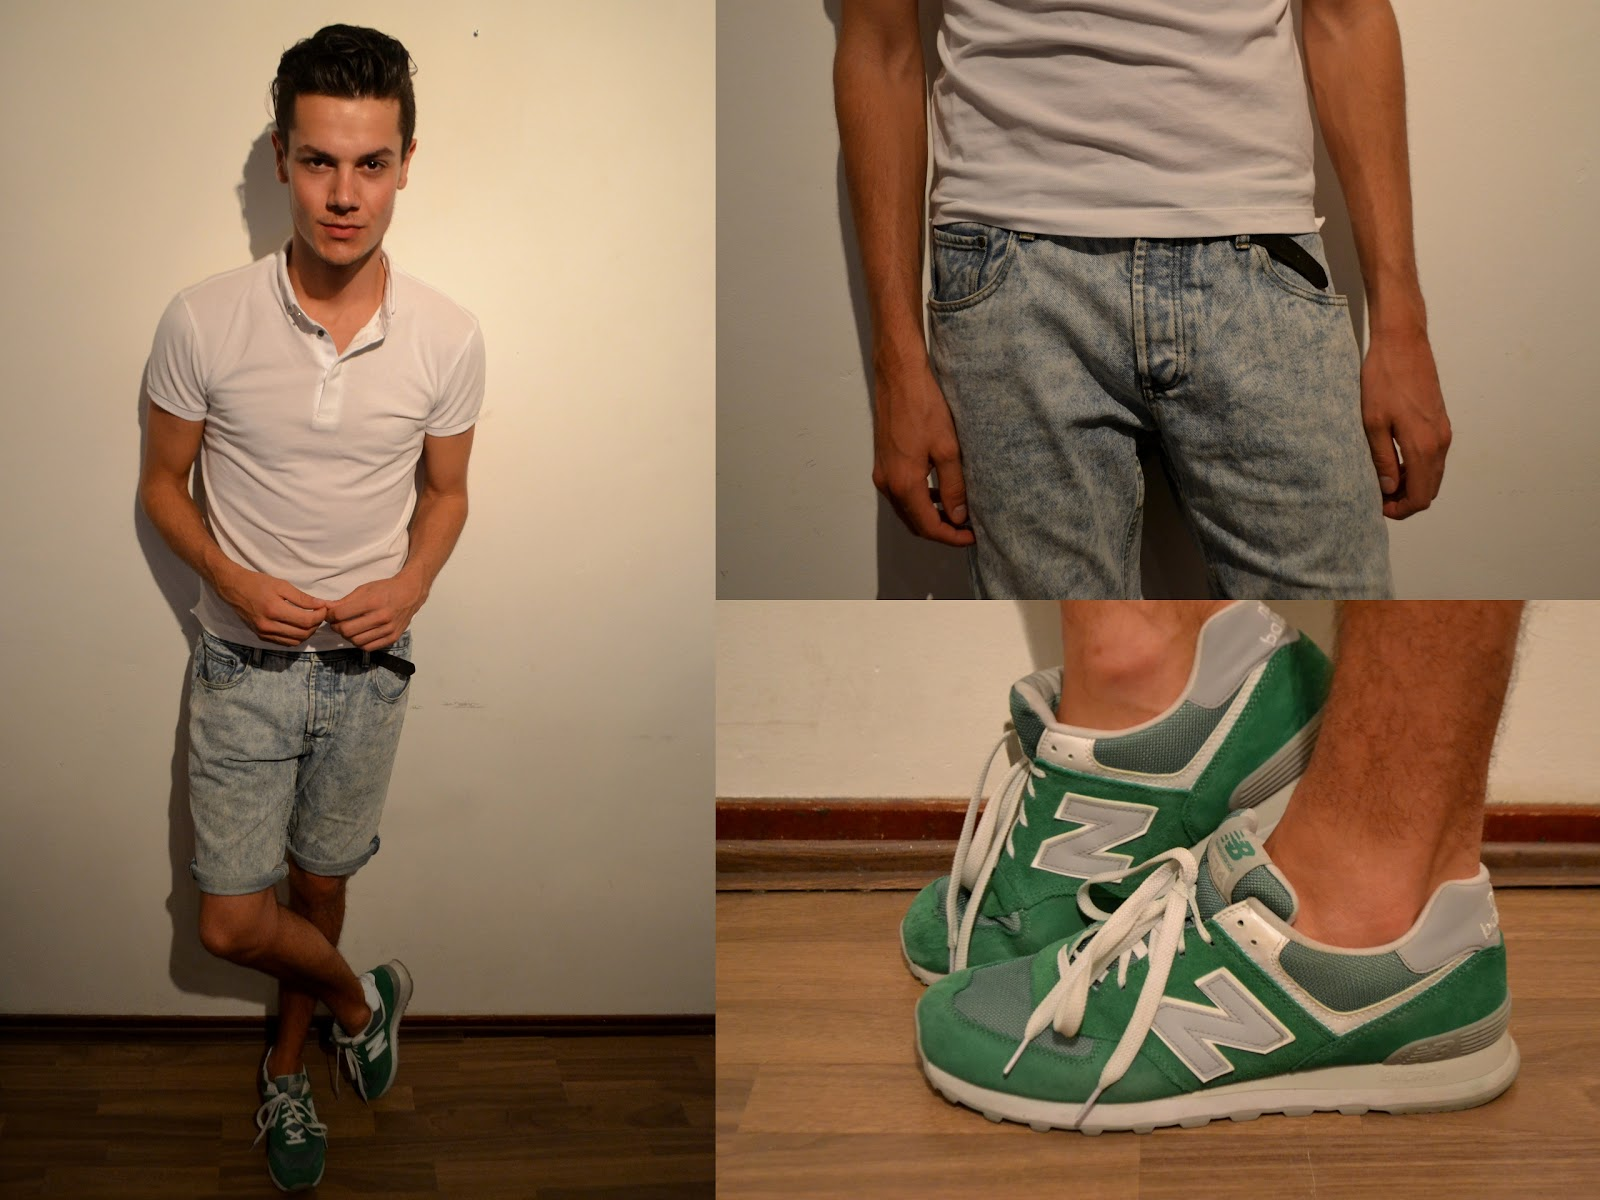 new balance 574 wearing of the green